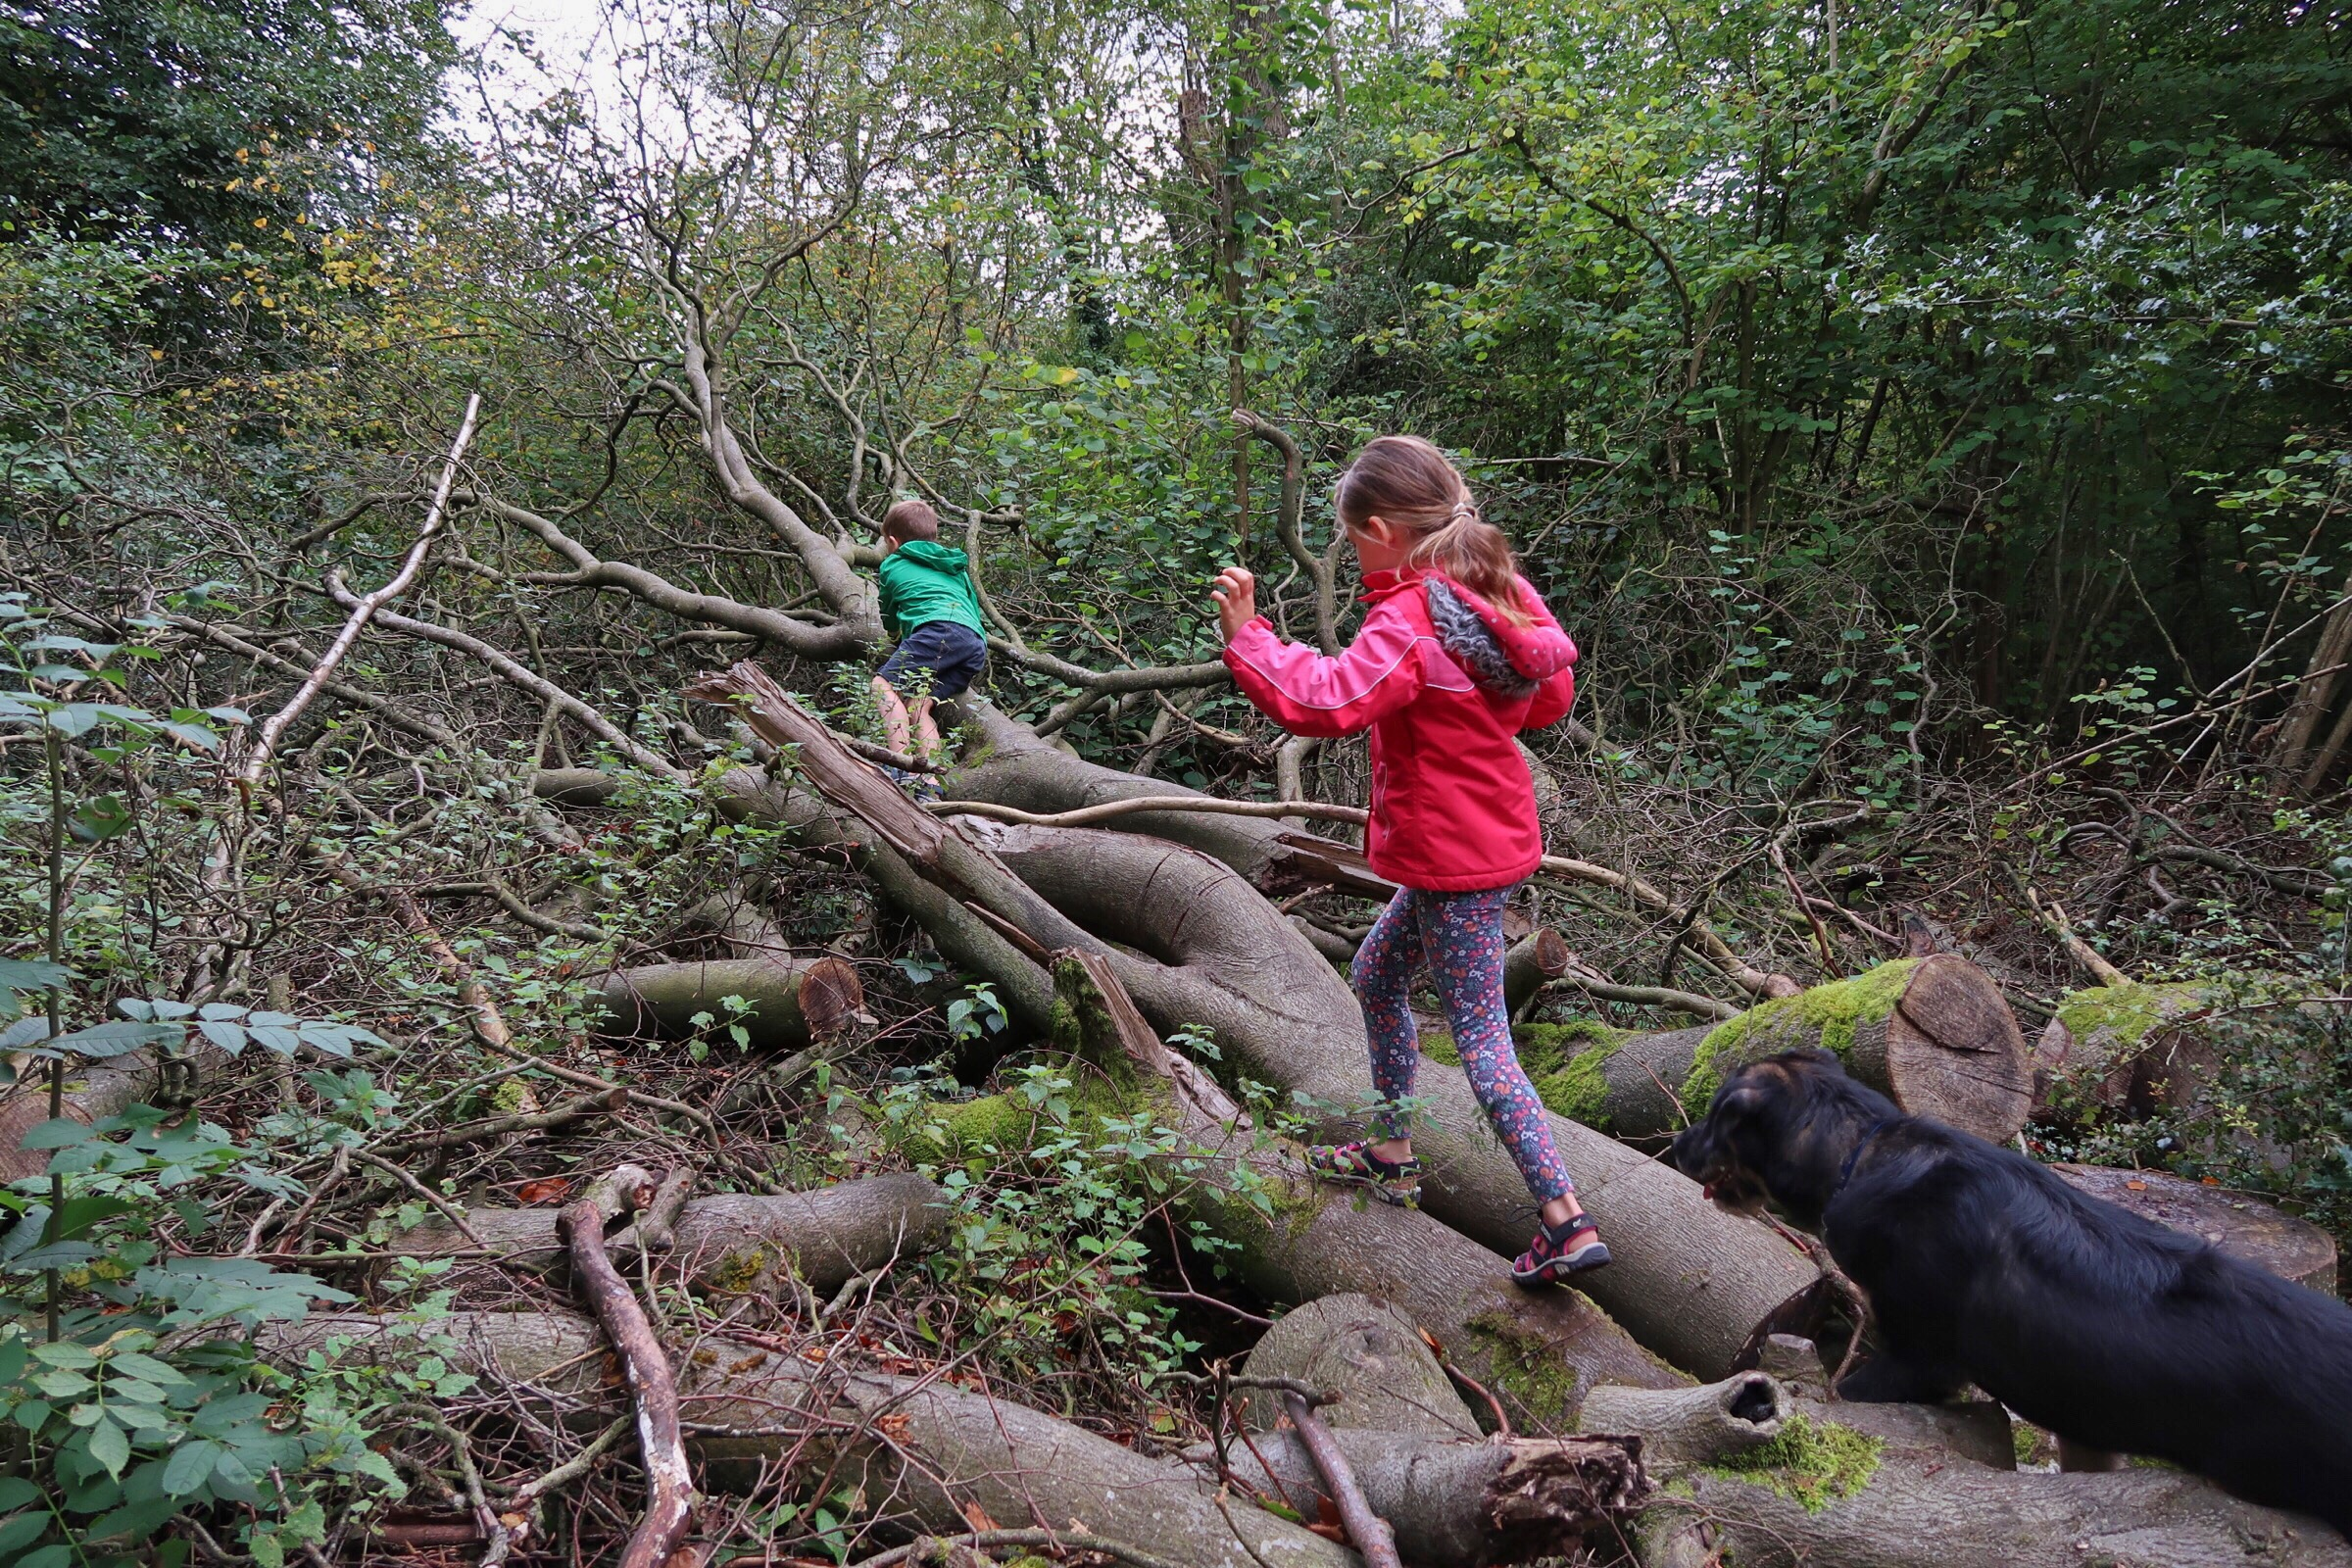 Things to do with kids in Gloucestershire